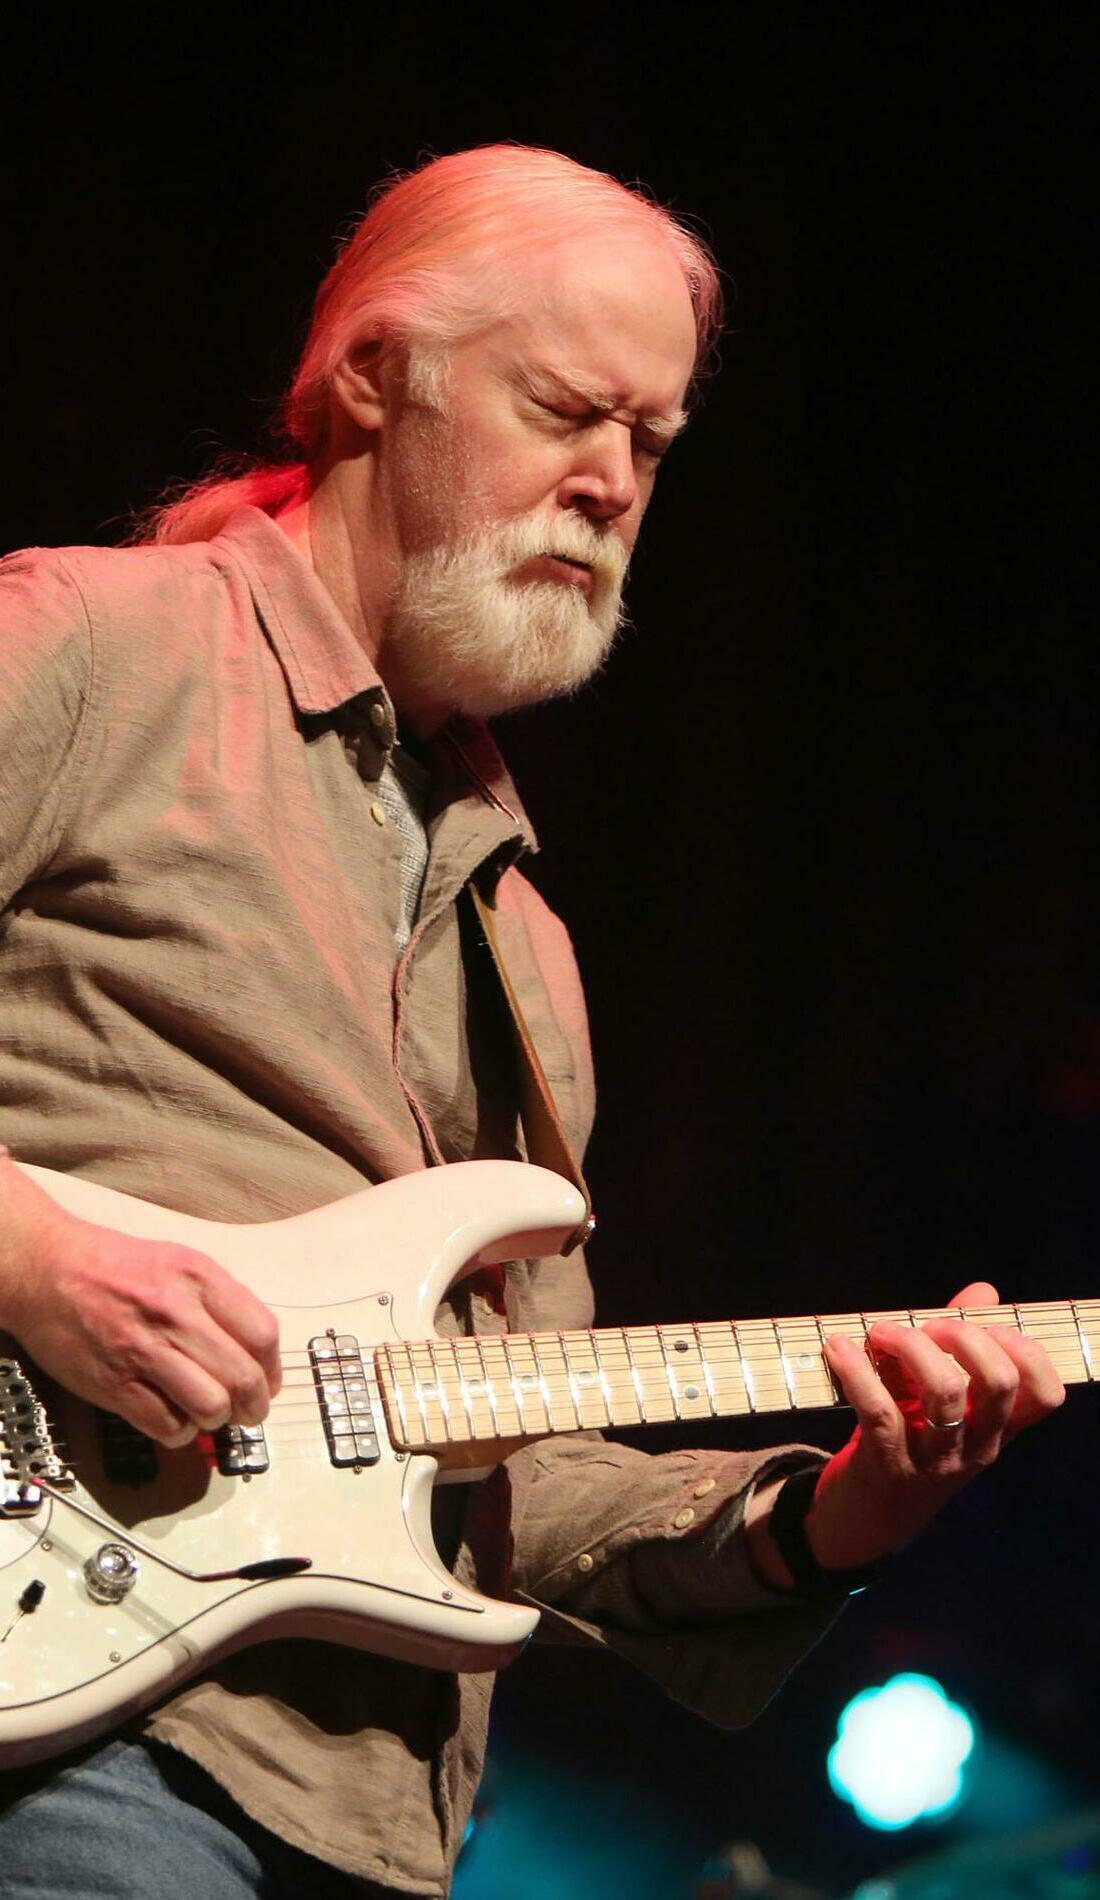 A Jimmy Herring live event